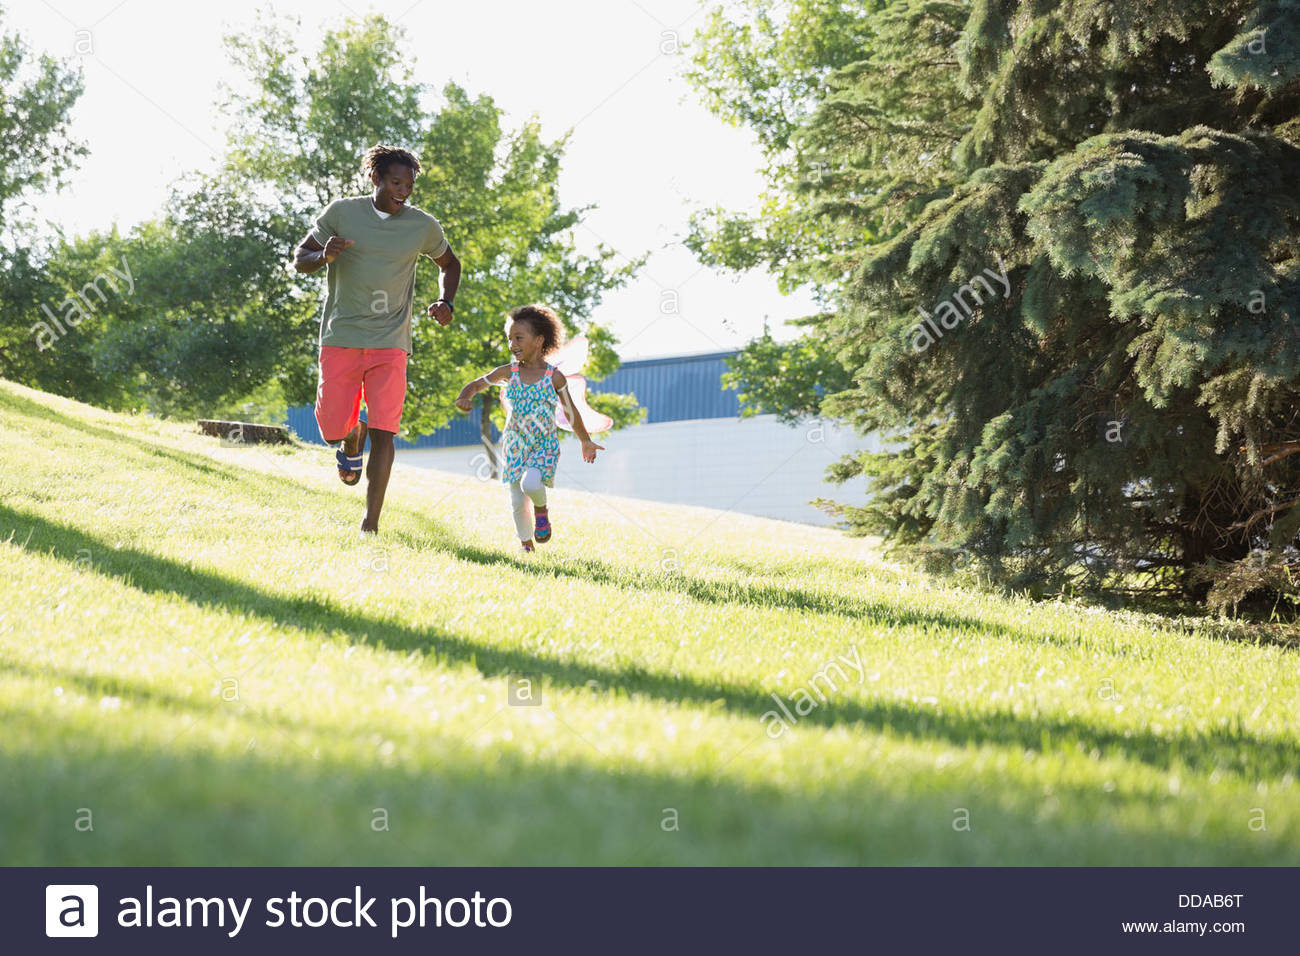 Cheerful father and daughter running in park - Stock Image